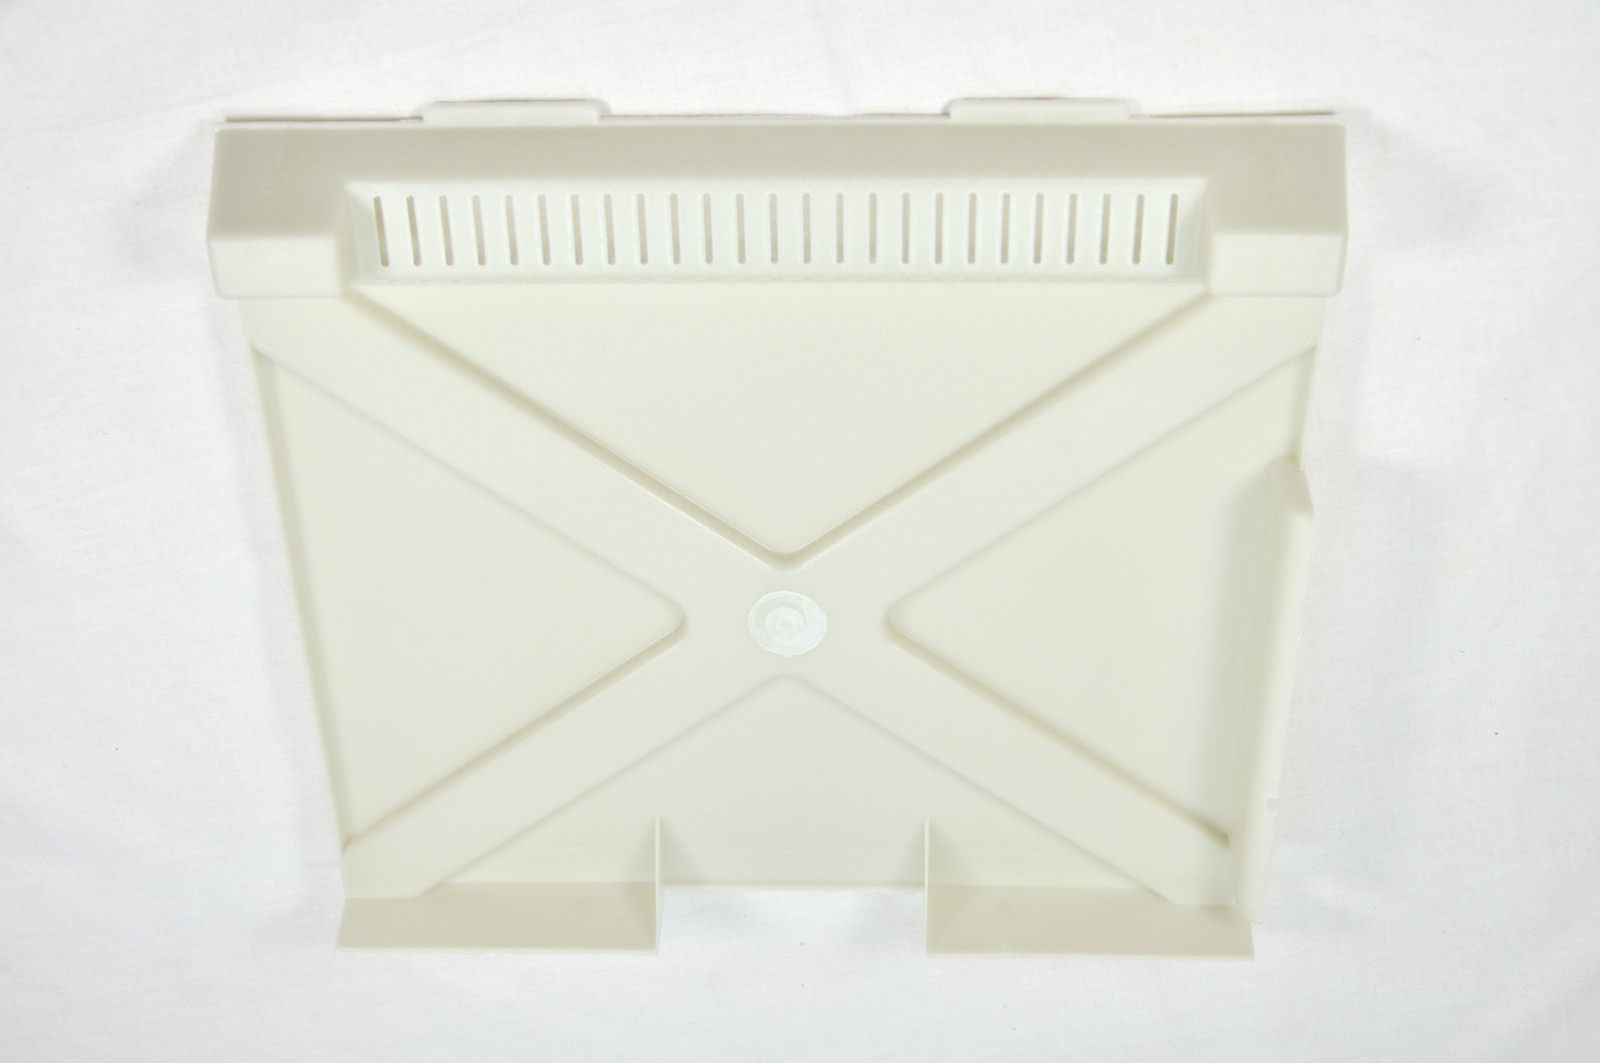 Stirrer Cover for Amana and Menumaster commercial microwave ovens [GCS.699545]